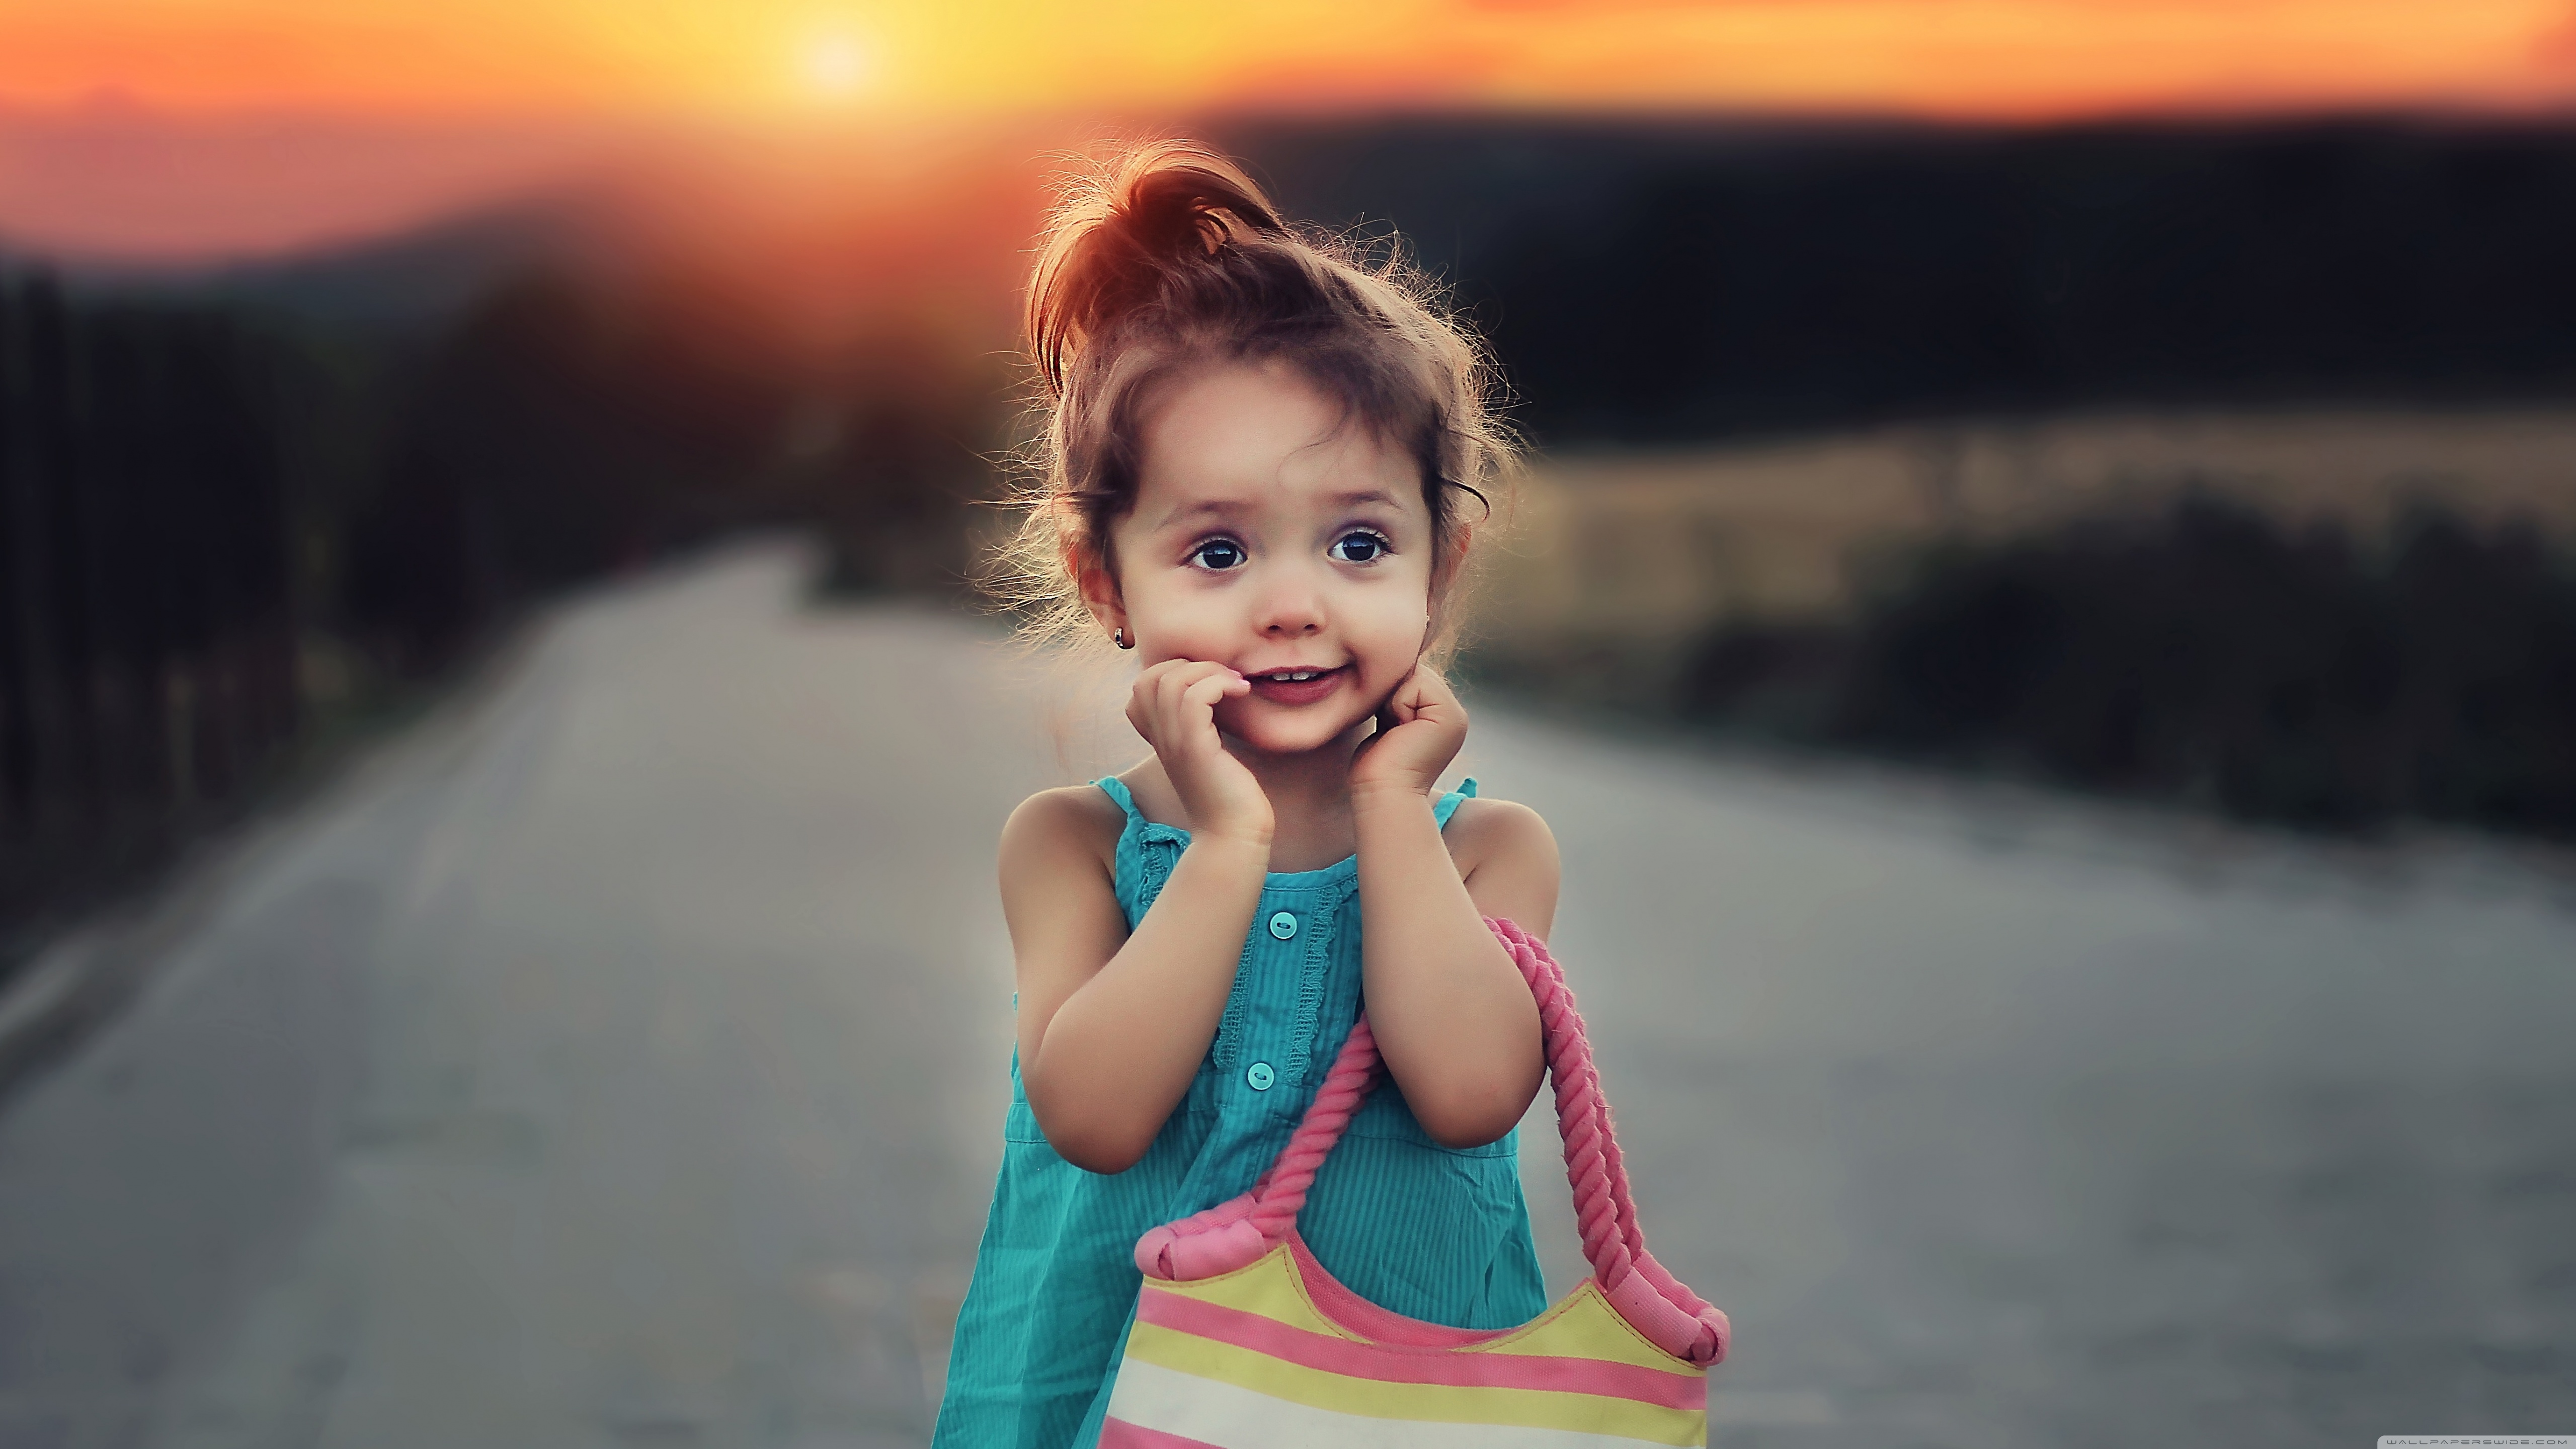 free photo: cute kids - friend, girl, little - free download - jooinn